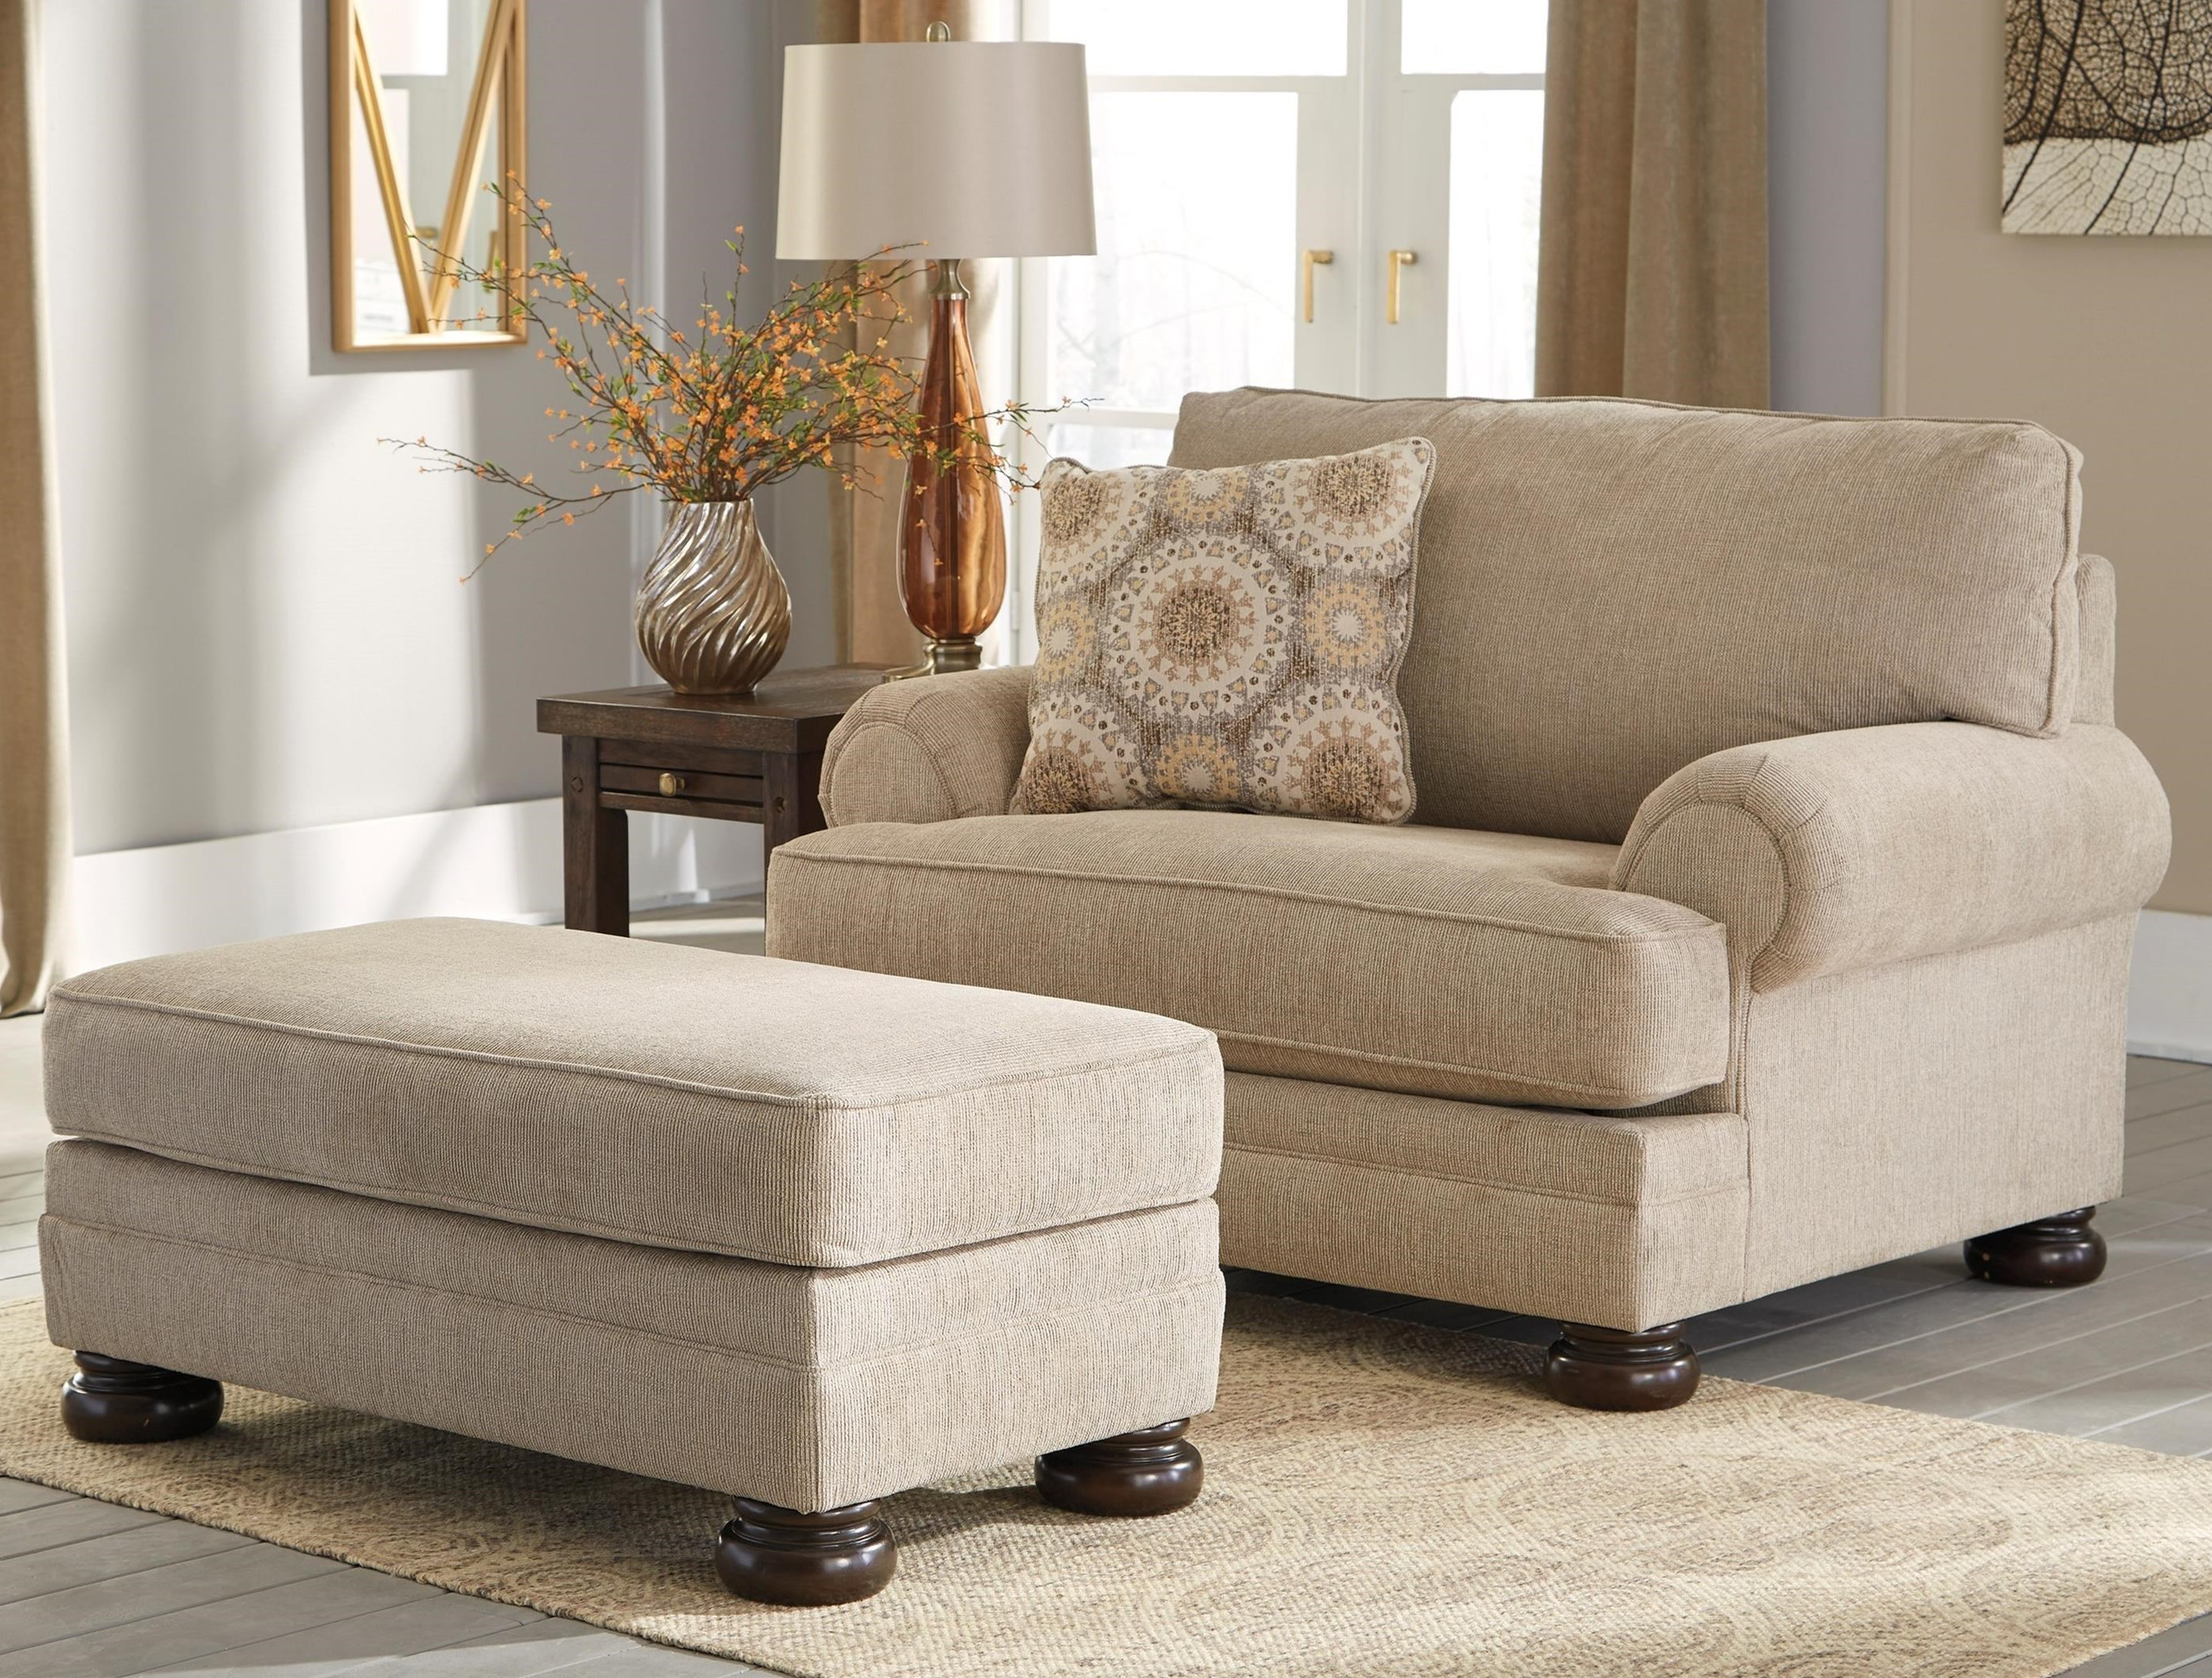 Benchcraft Quarry Hill Chair and a Half & Ottoman